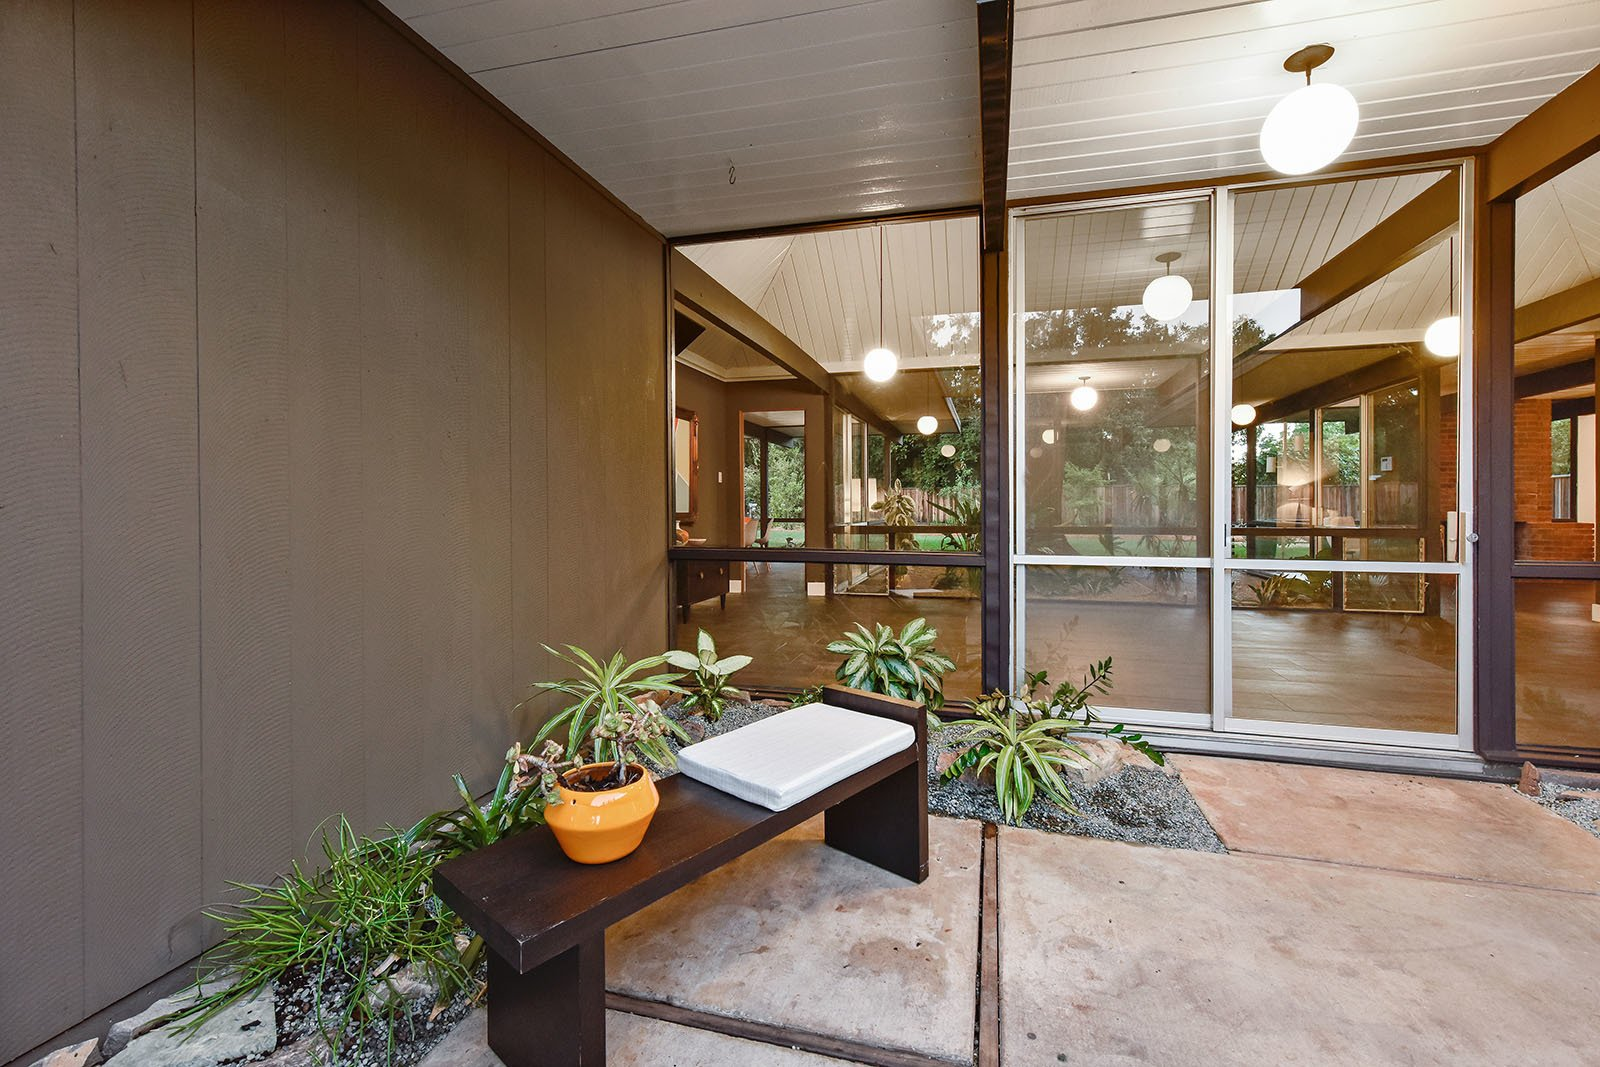 Photo 3 of 15 in An Enormous Bay Area Eichler Asks $1.45M